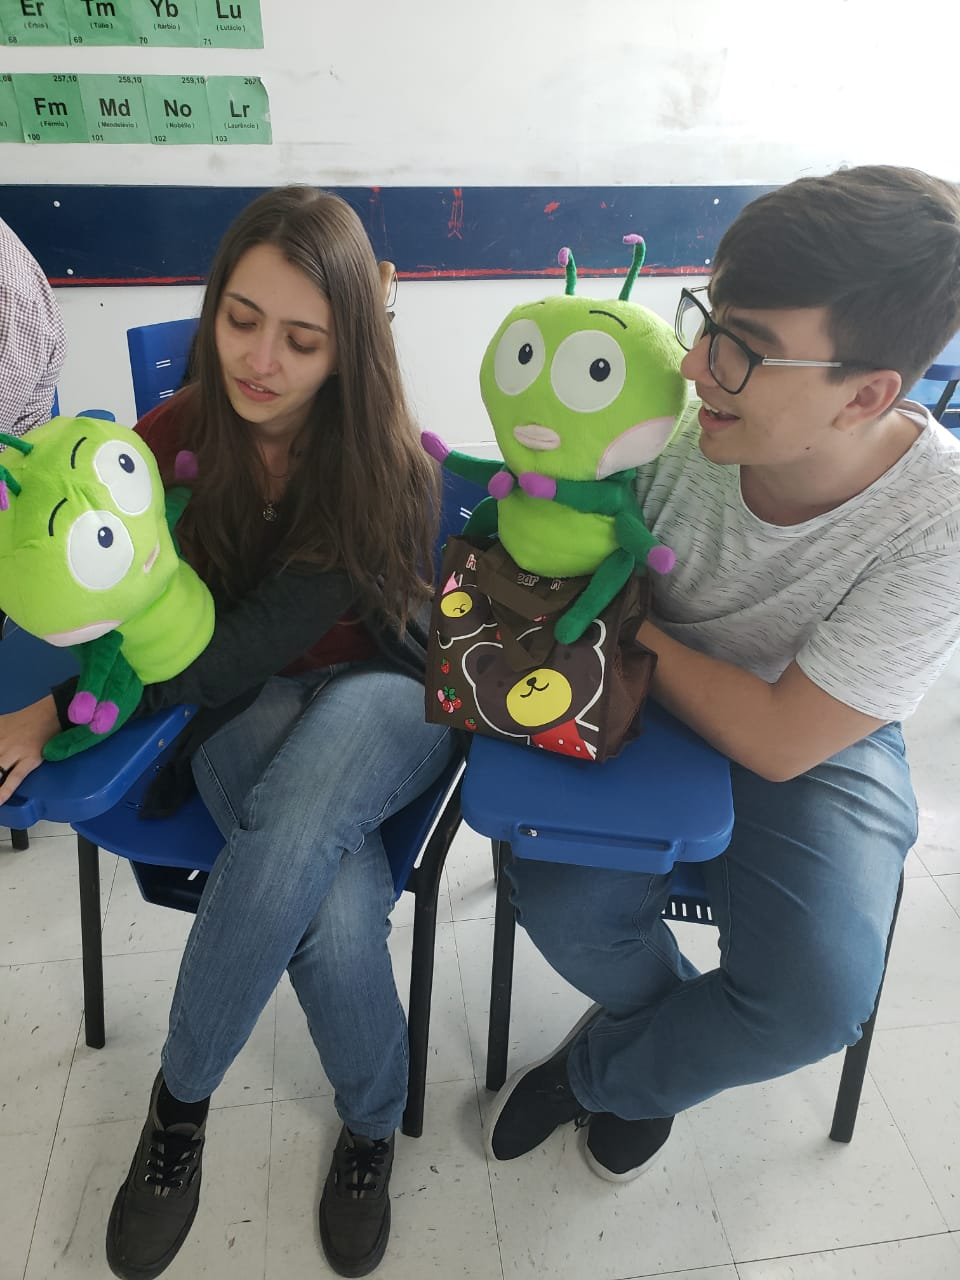 Puppeteering!